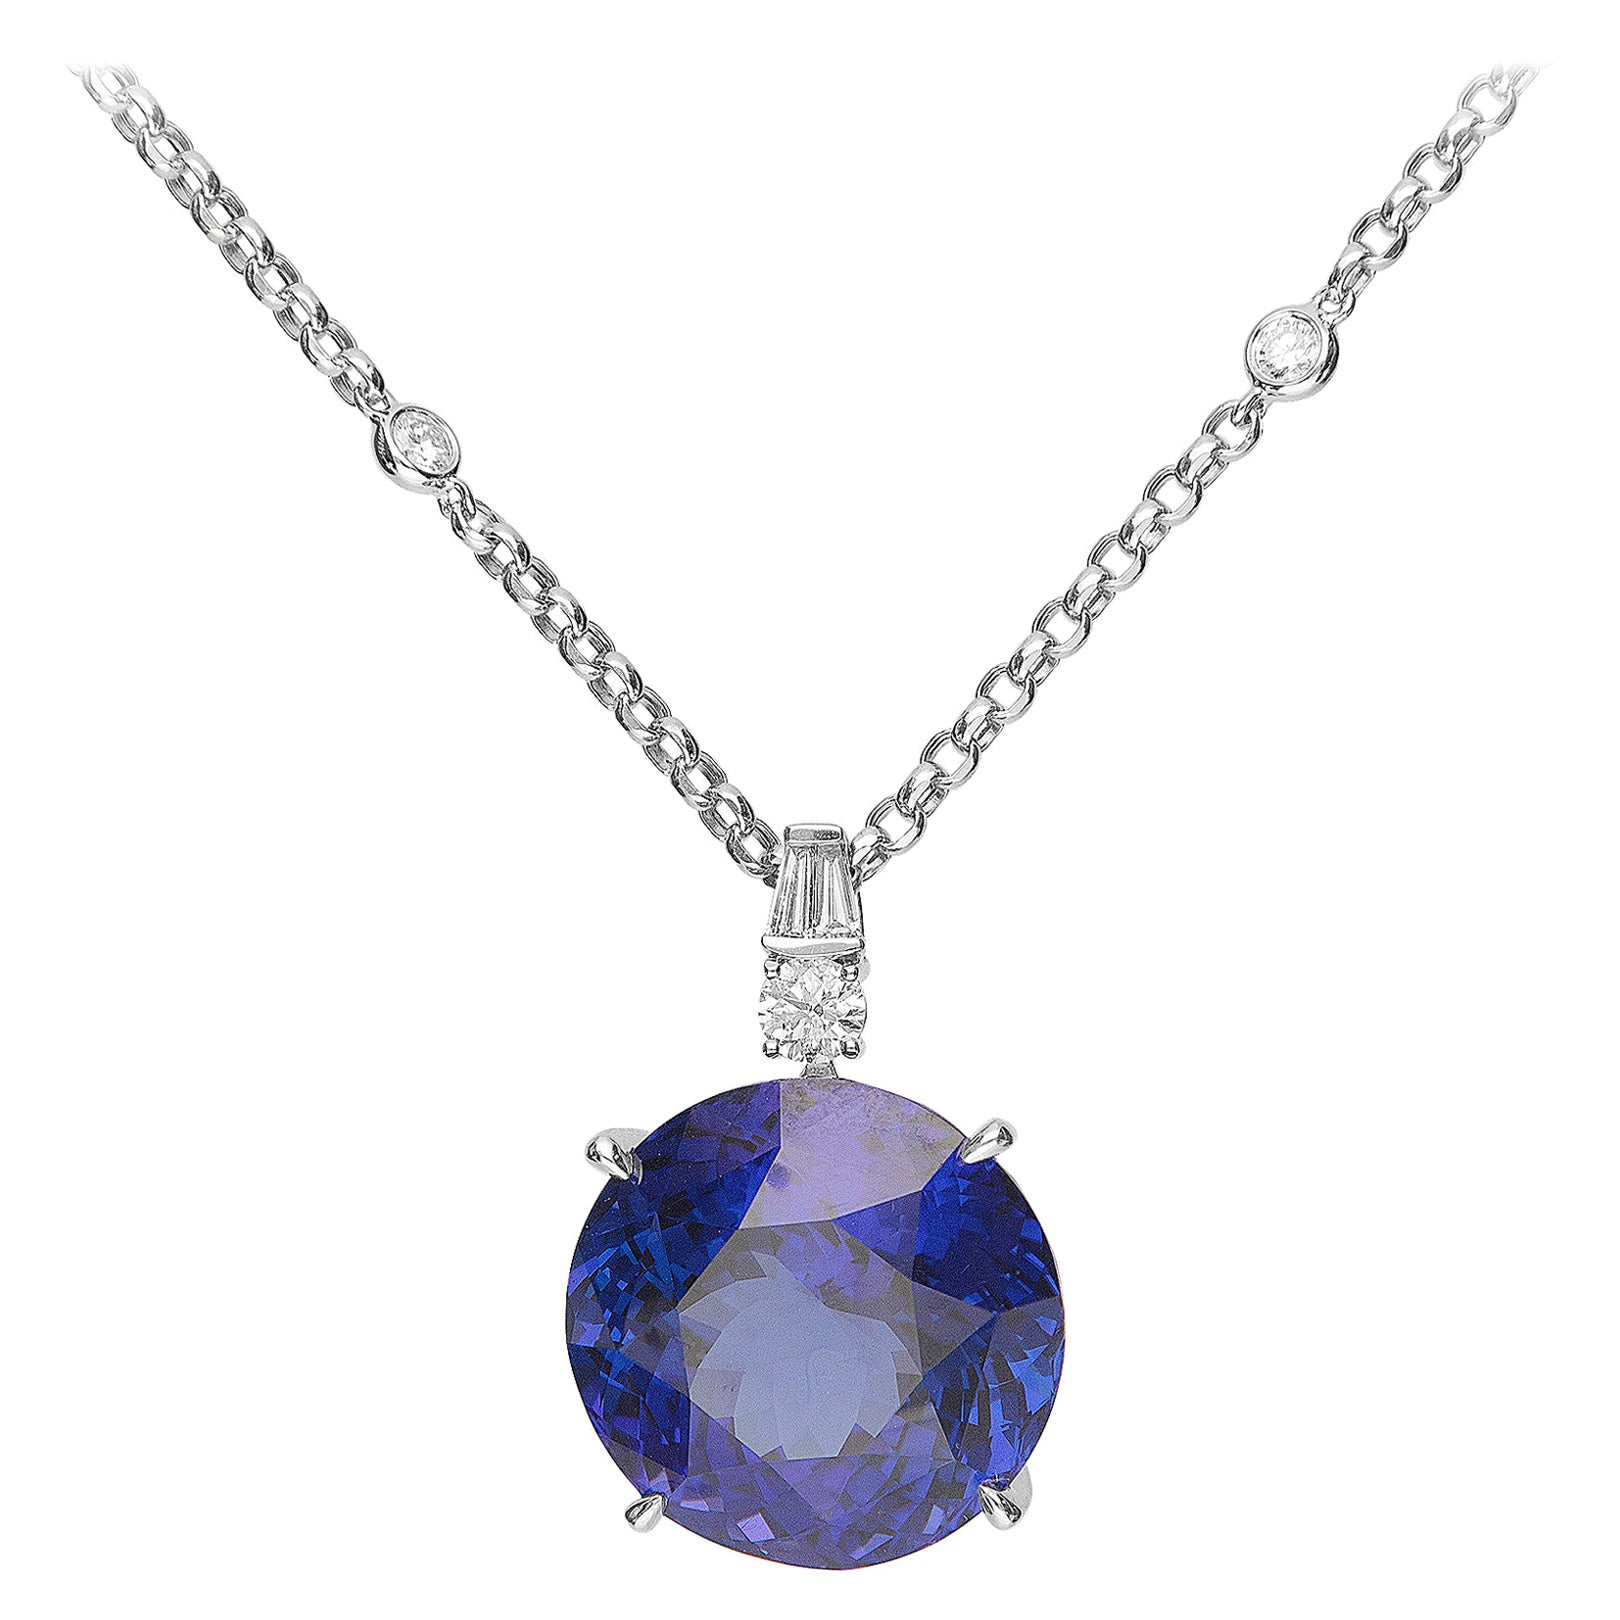 44.73 Carat Tanzanite and Diamond 18 Karat White Gold Pendant Necklace